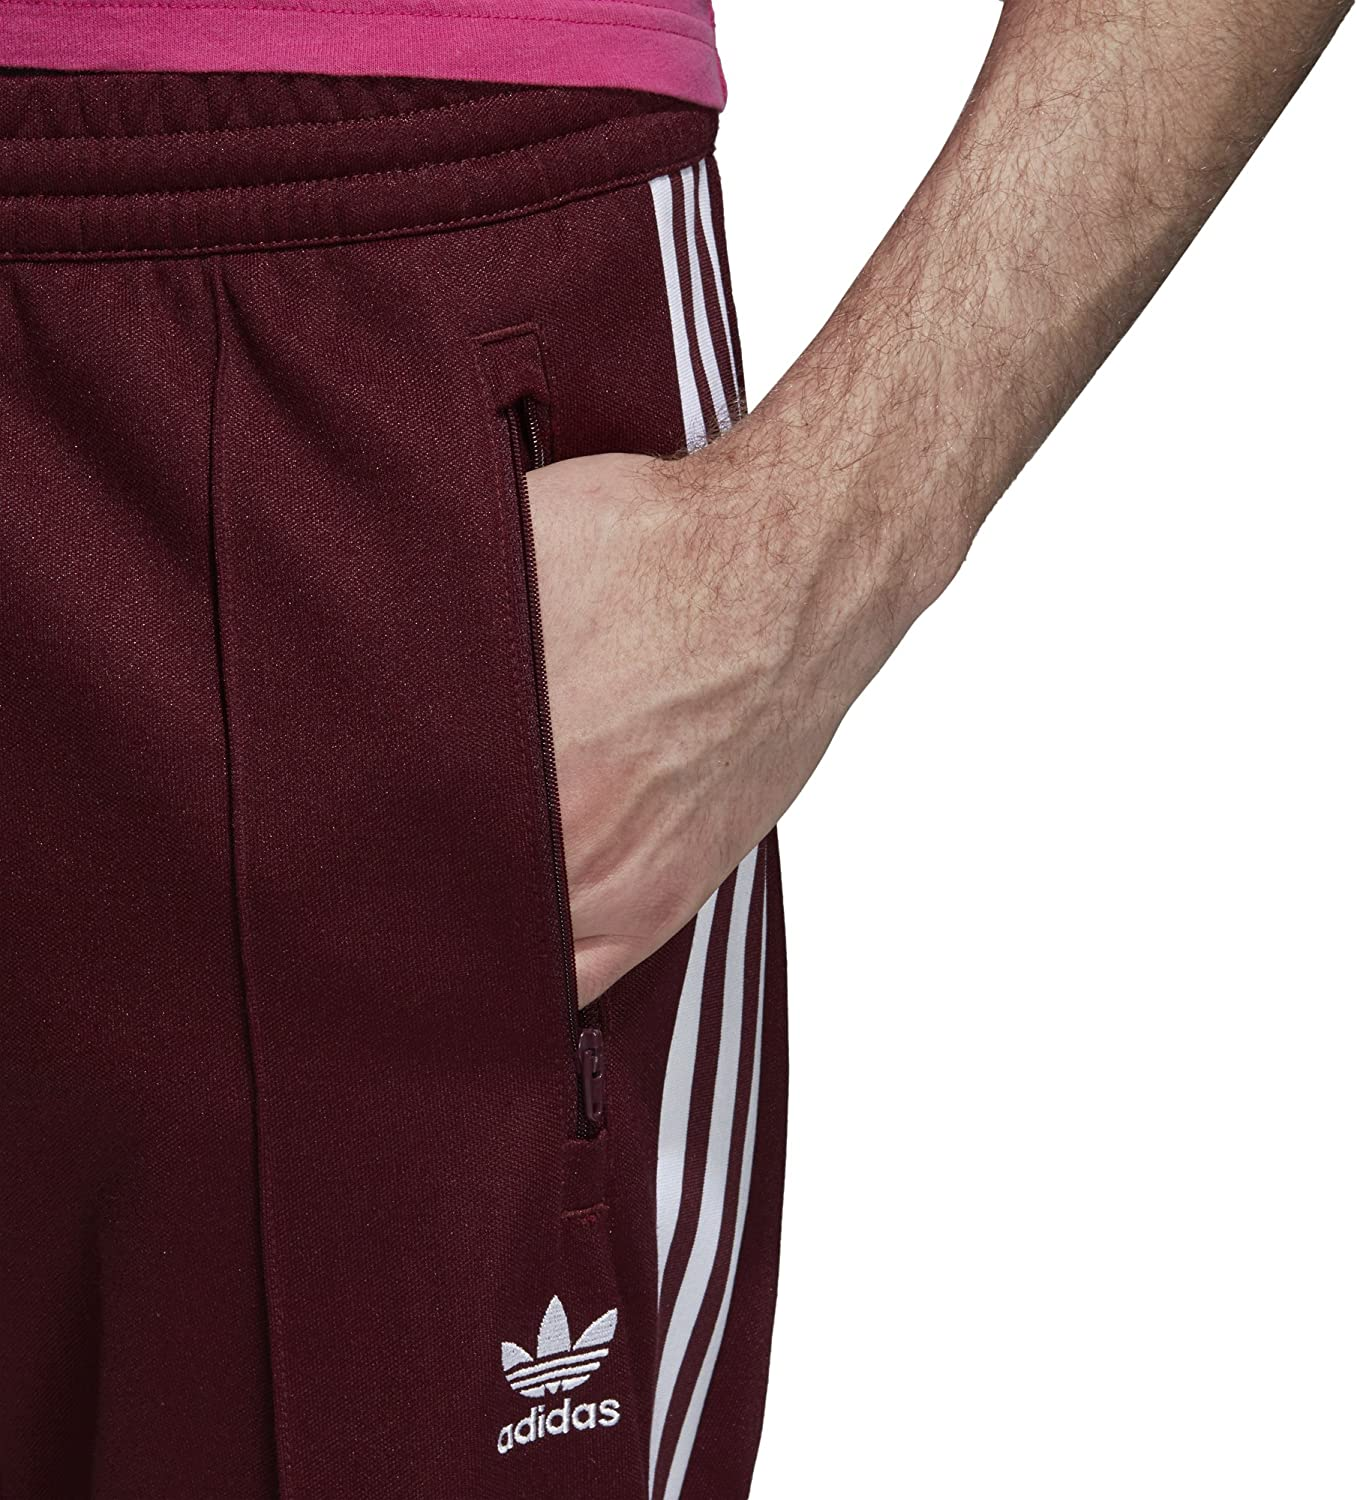 adidas Woven TP 78 sweat pants olive